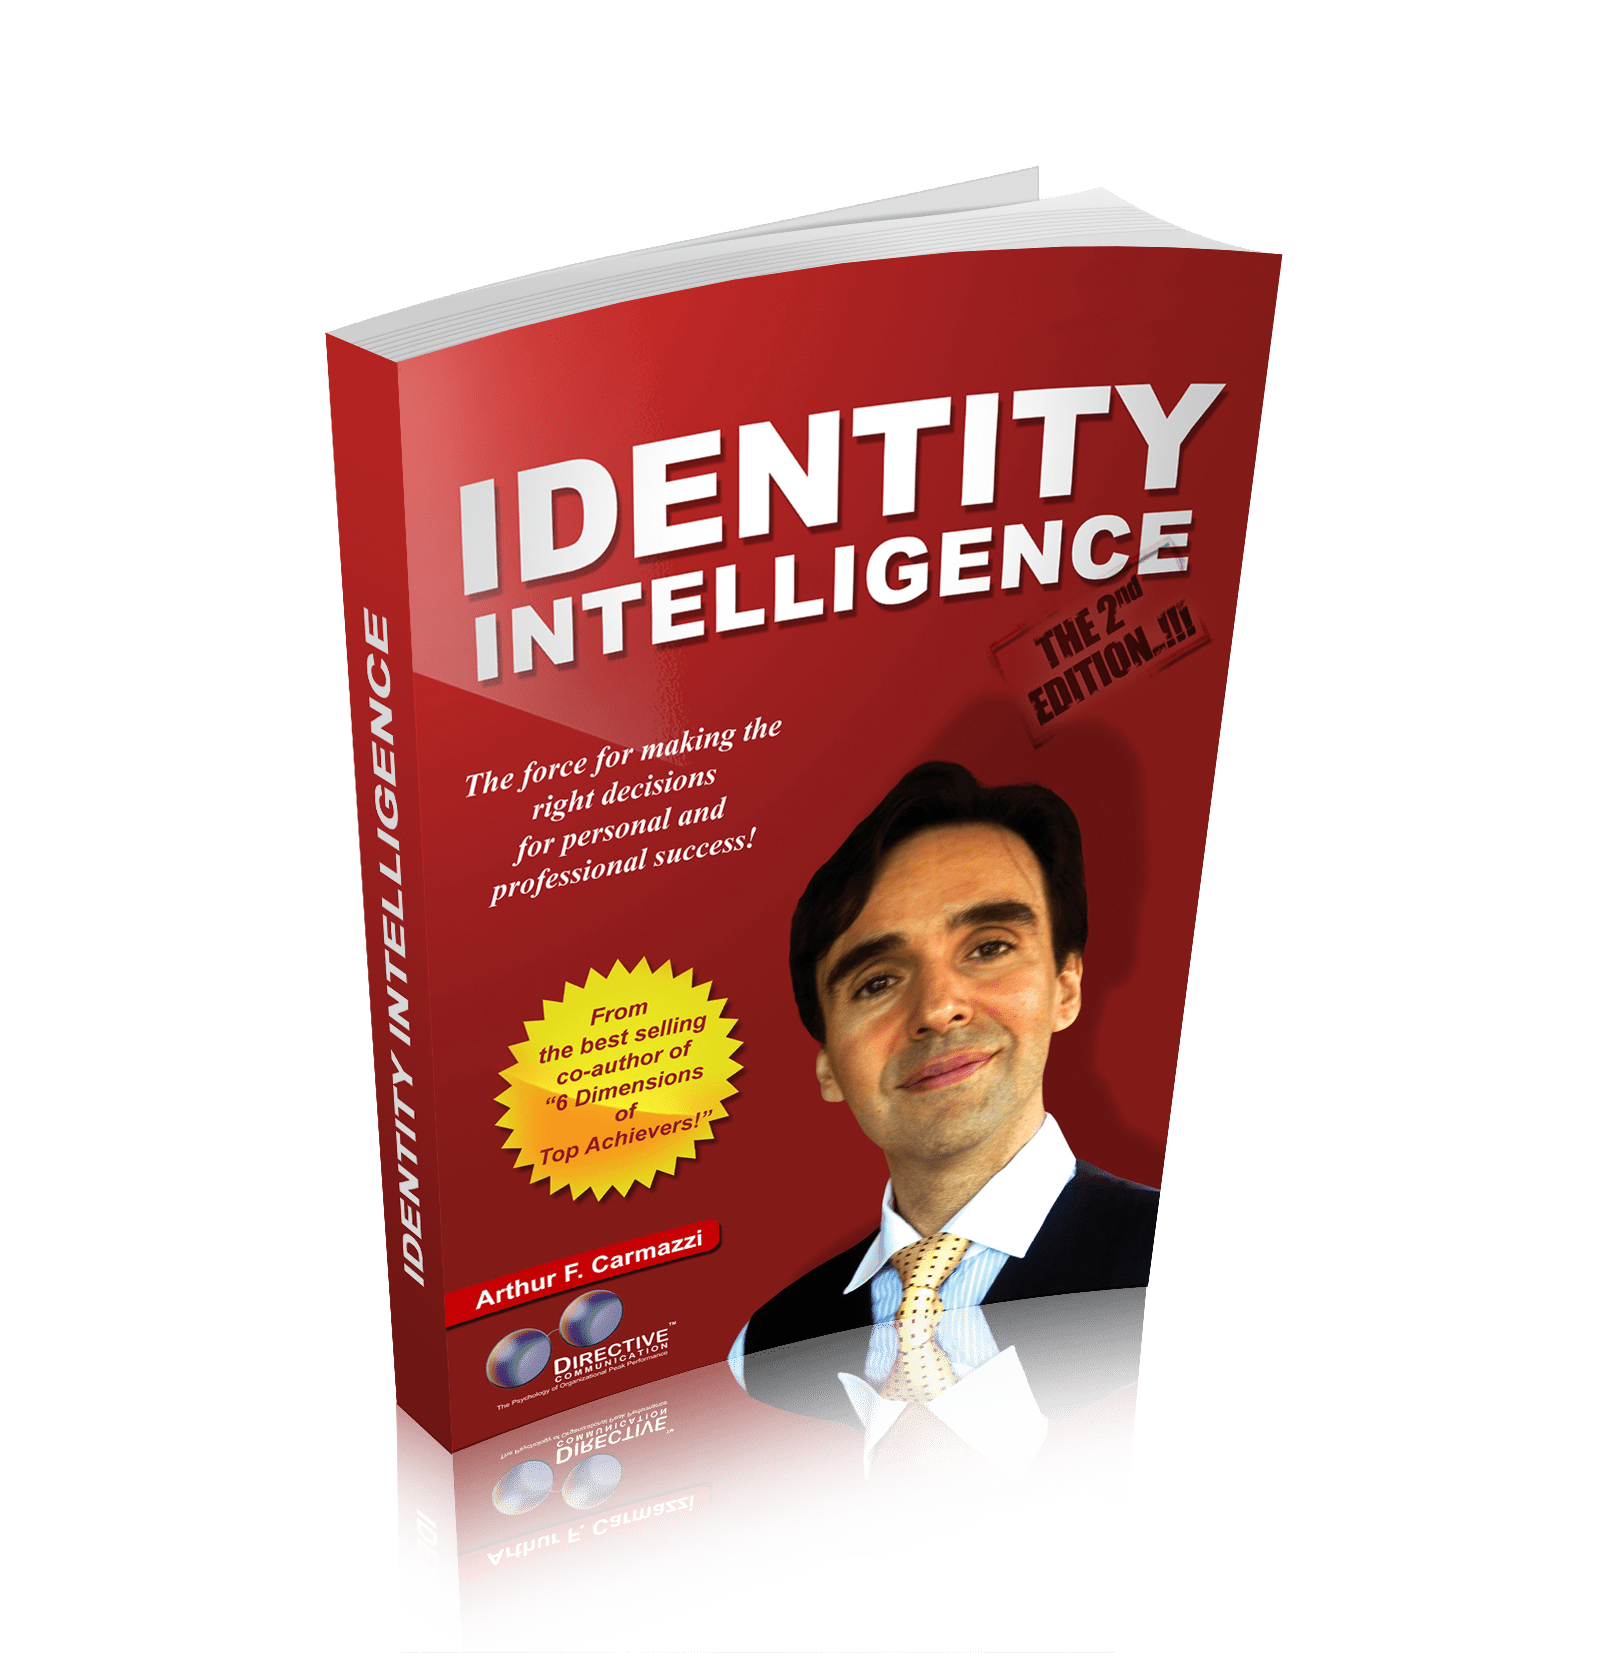 Identity Intelligence Book